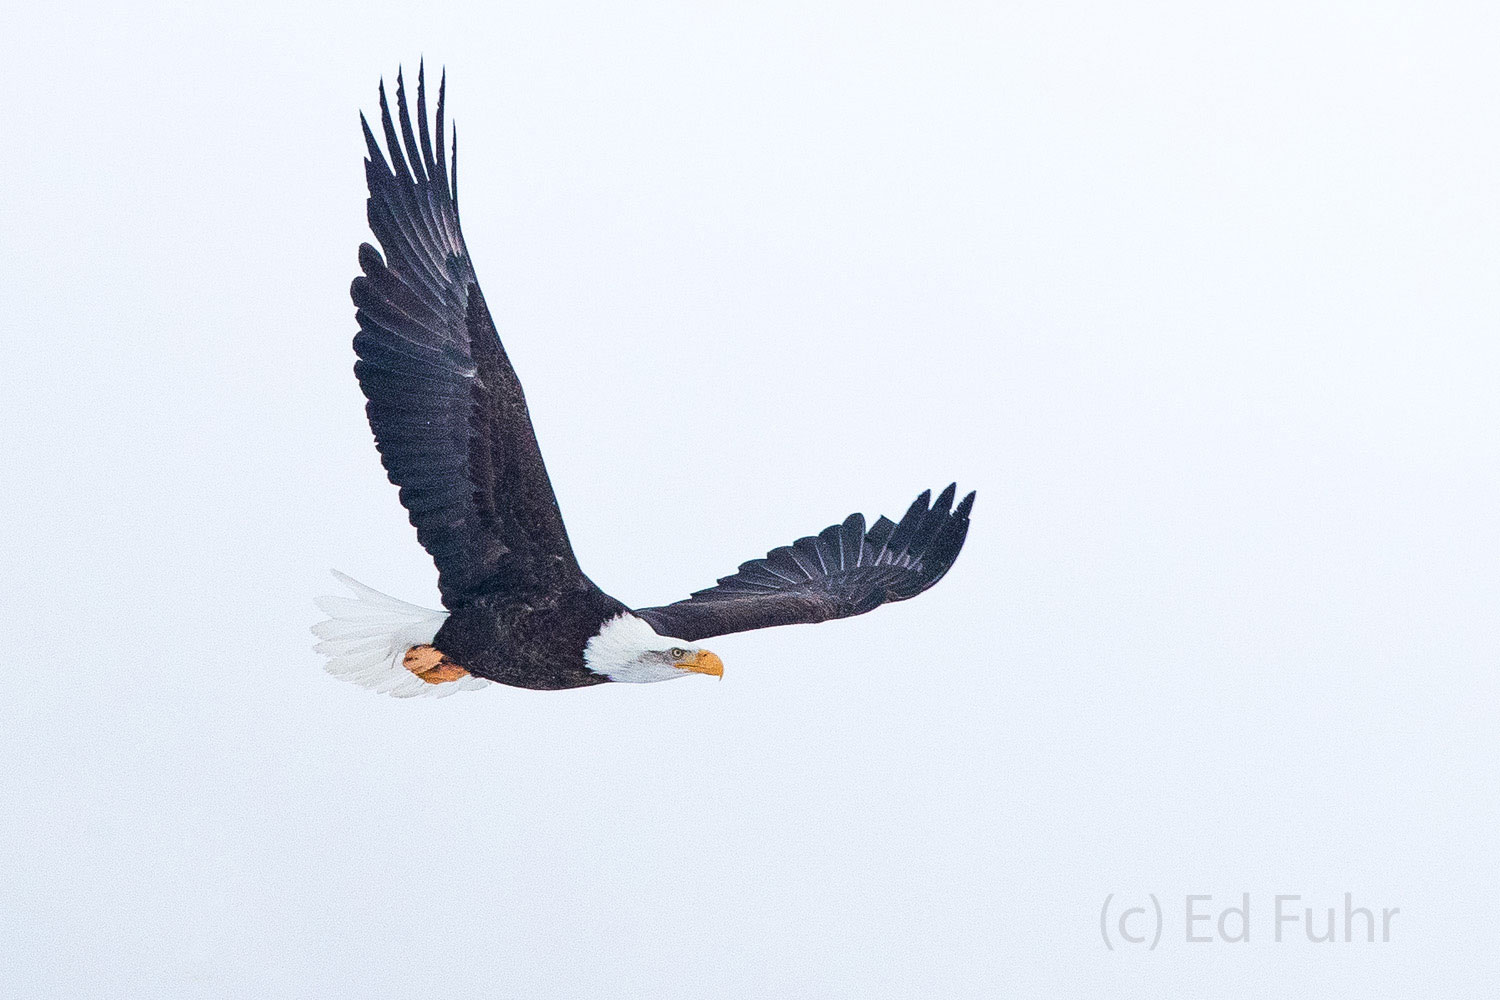 After hours of waiting, this eagle soars toward the Gros Ventre river where he might have better luck finding prey or a carcass...